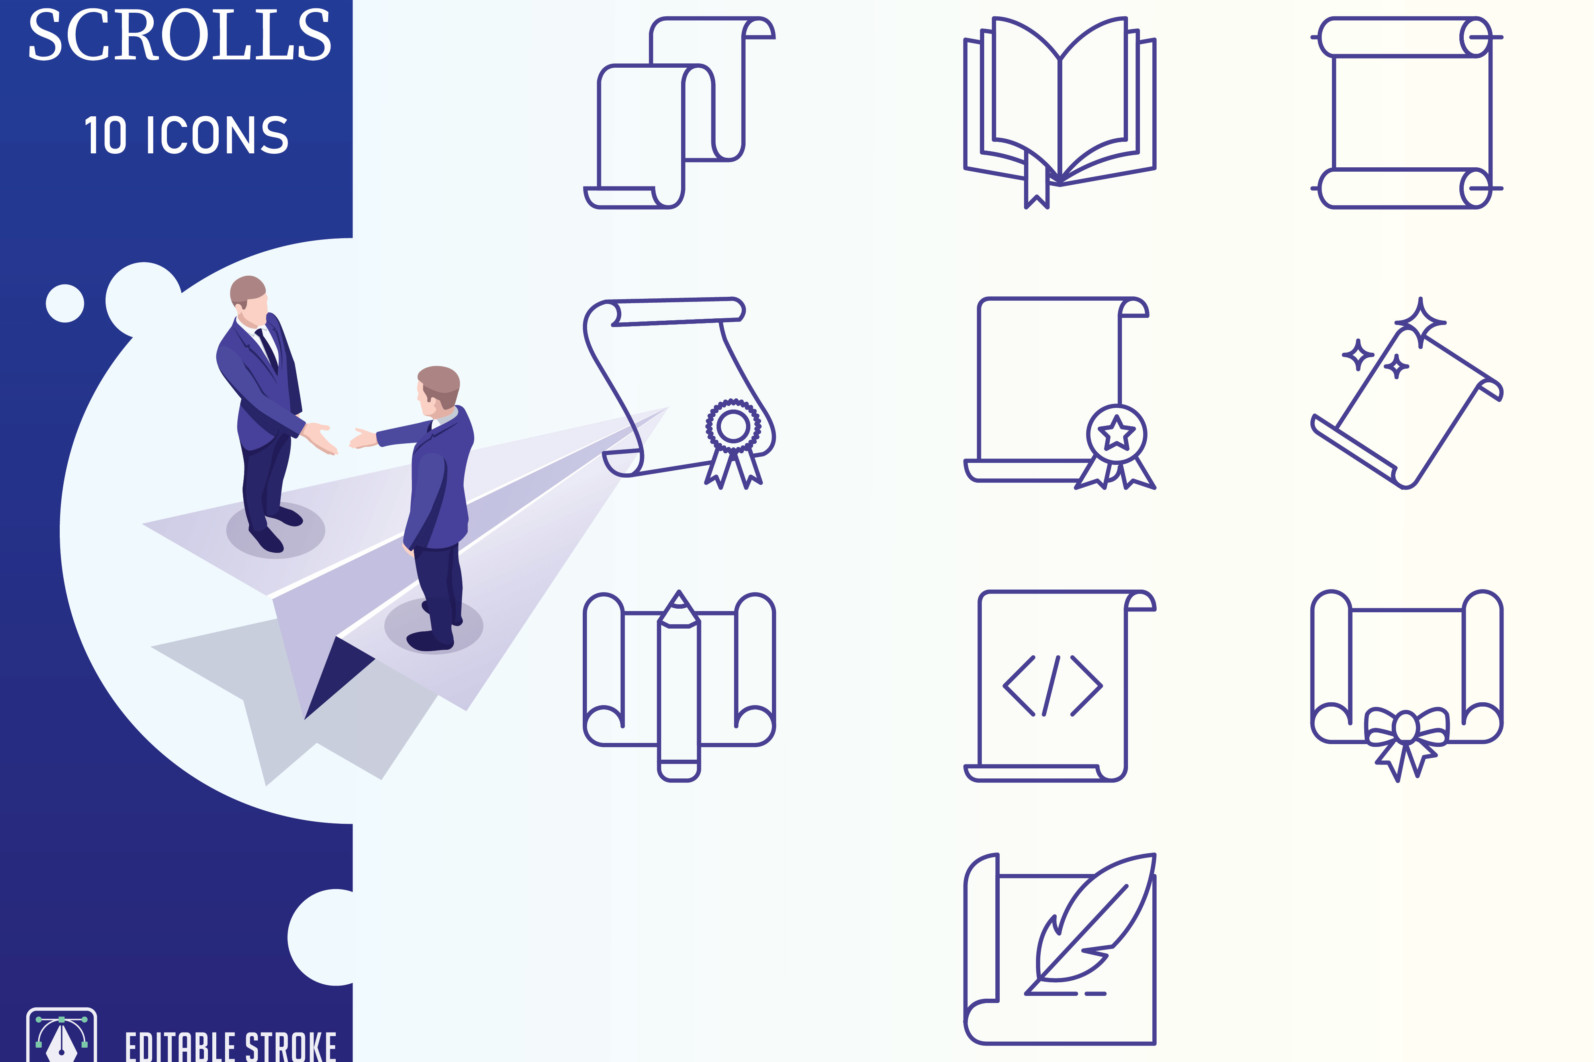 Outline : Scrolls Icon set - Scrolls 01 scaled -